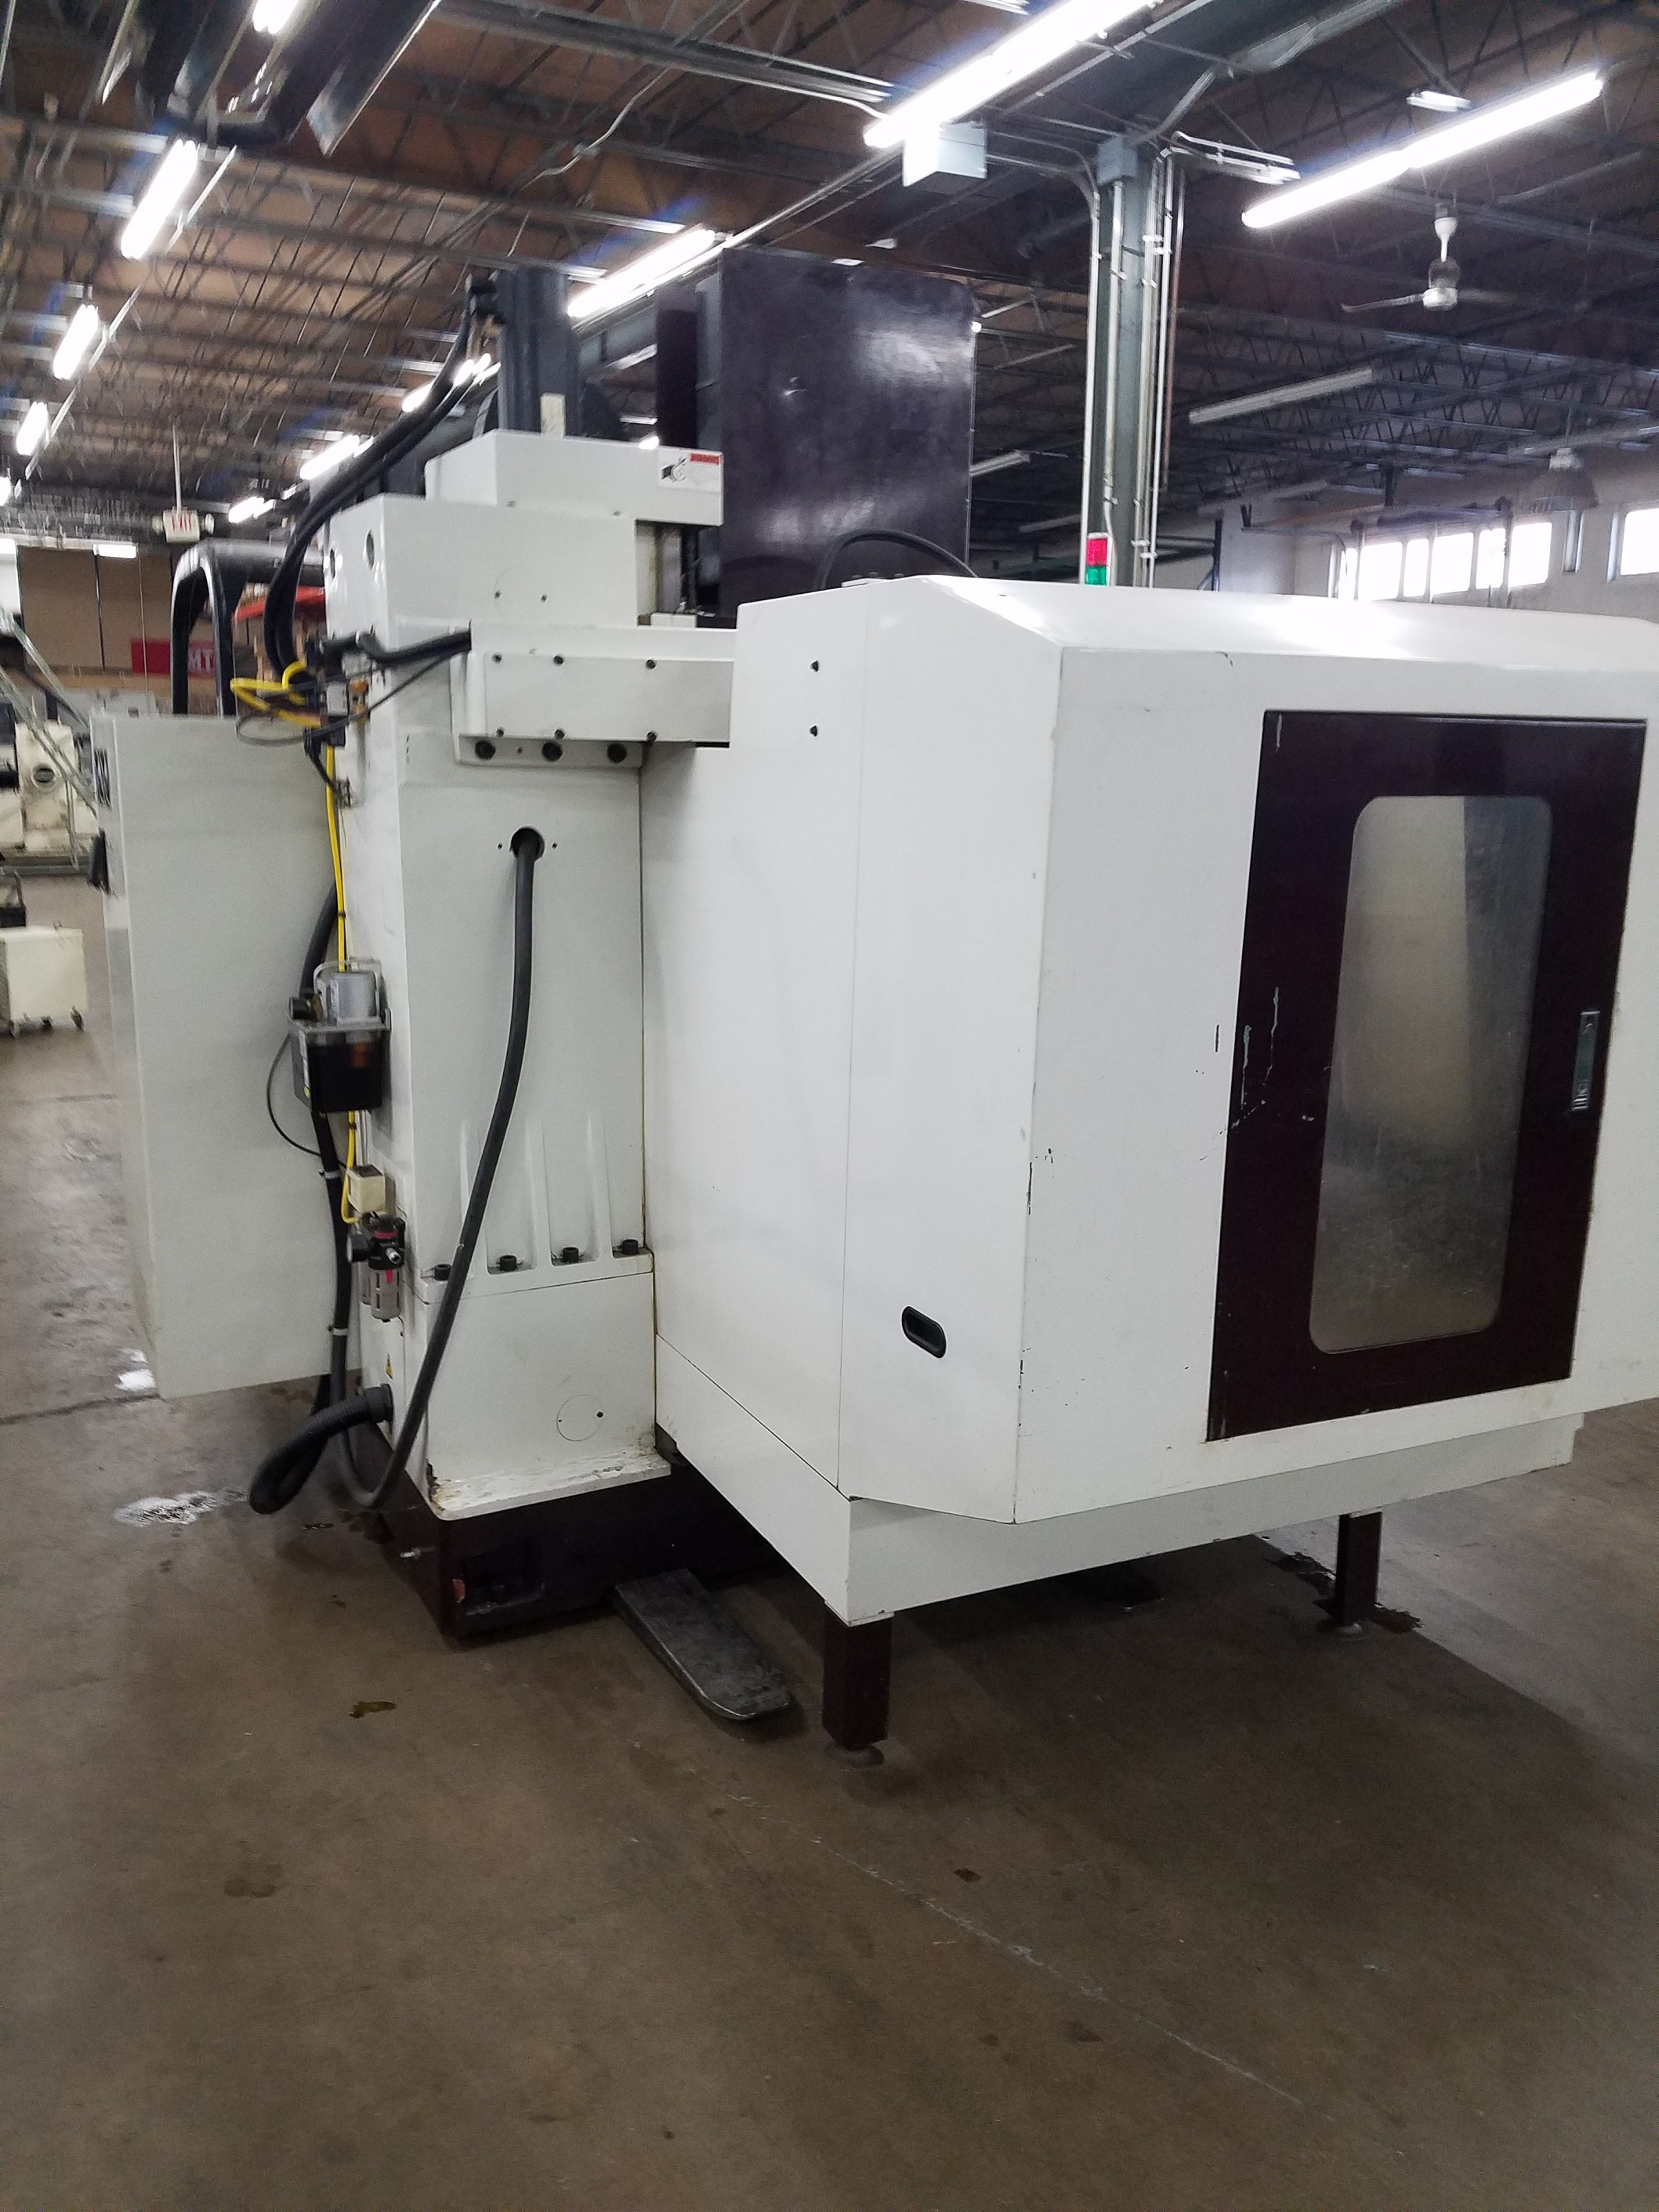 """40"""" x 20"""" Chevalier CNC Vertical Machining Center.  New Anilam Control, 20 ATC, Cat #40 Spindle Taper."""